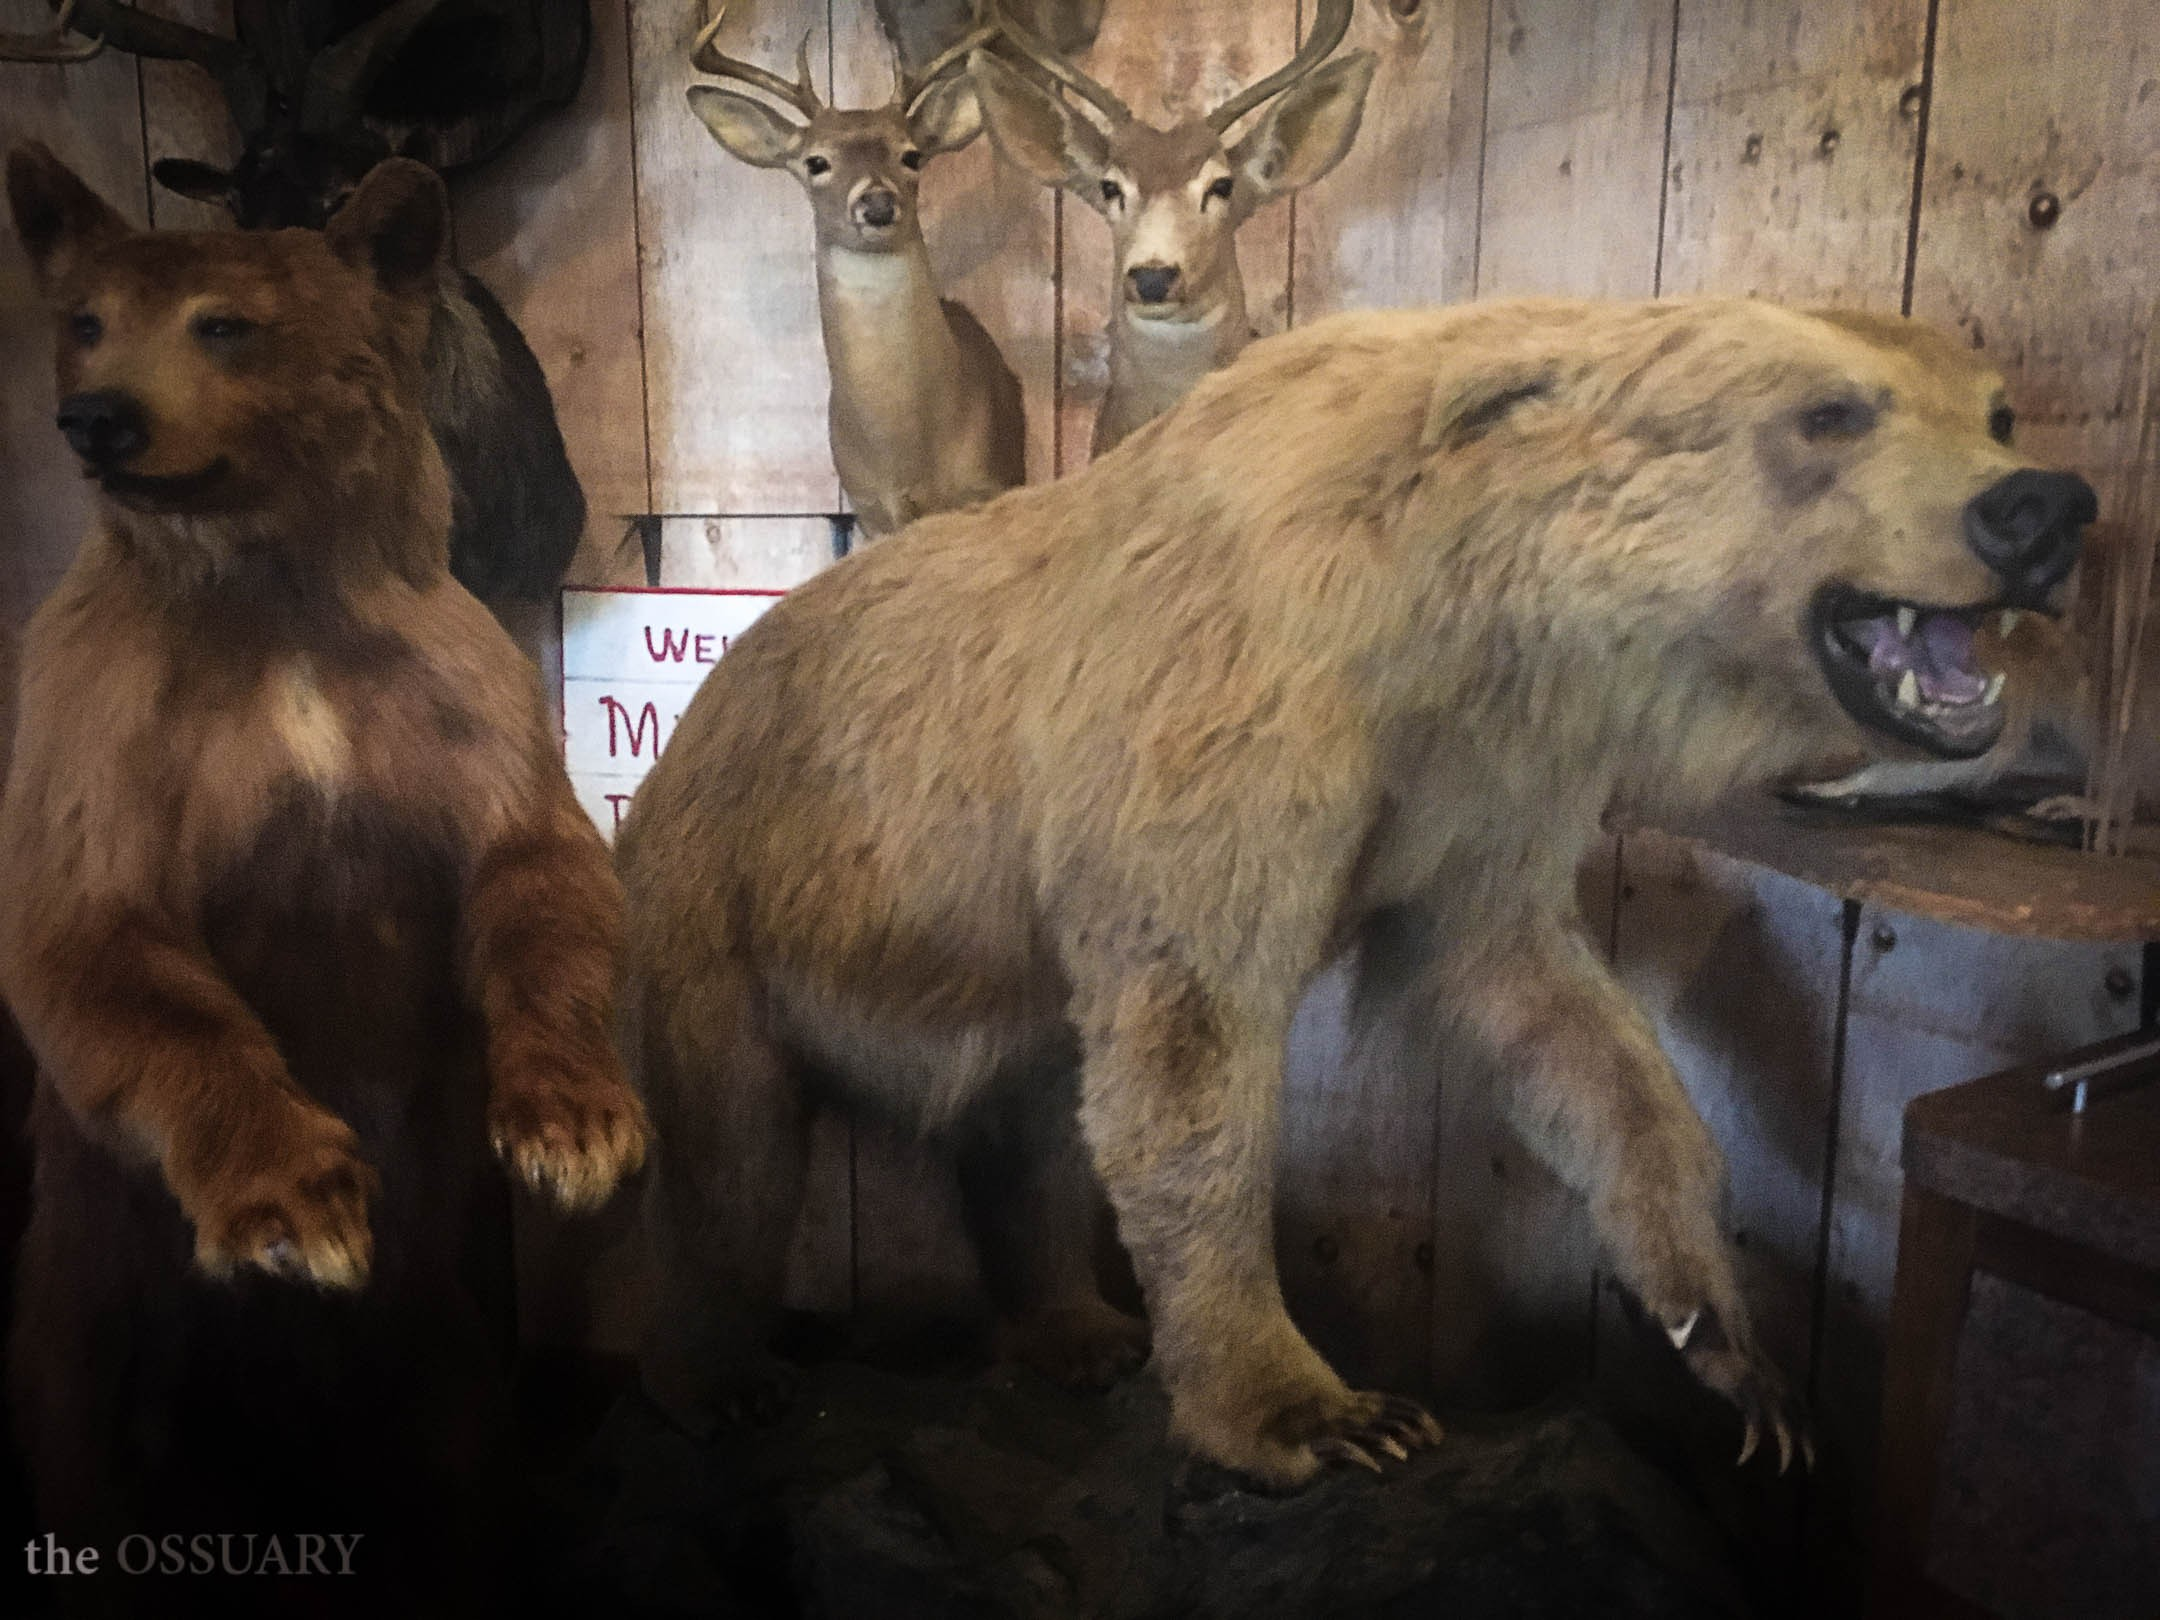 Taxidermy and Bar-B-Q